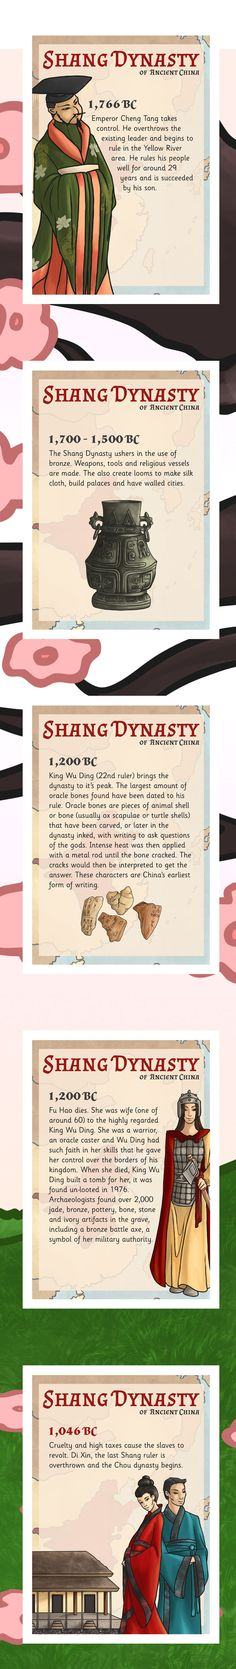 KS2 History Timelines- The Shang Dynasty of China Timeline Posters 6th Grade Social Studies, Teaching Social Studies, Teaching History, Primary History, History For Kids, Ancient World History, Cultura General, History Classroom, Story Of The World